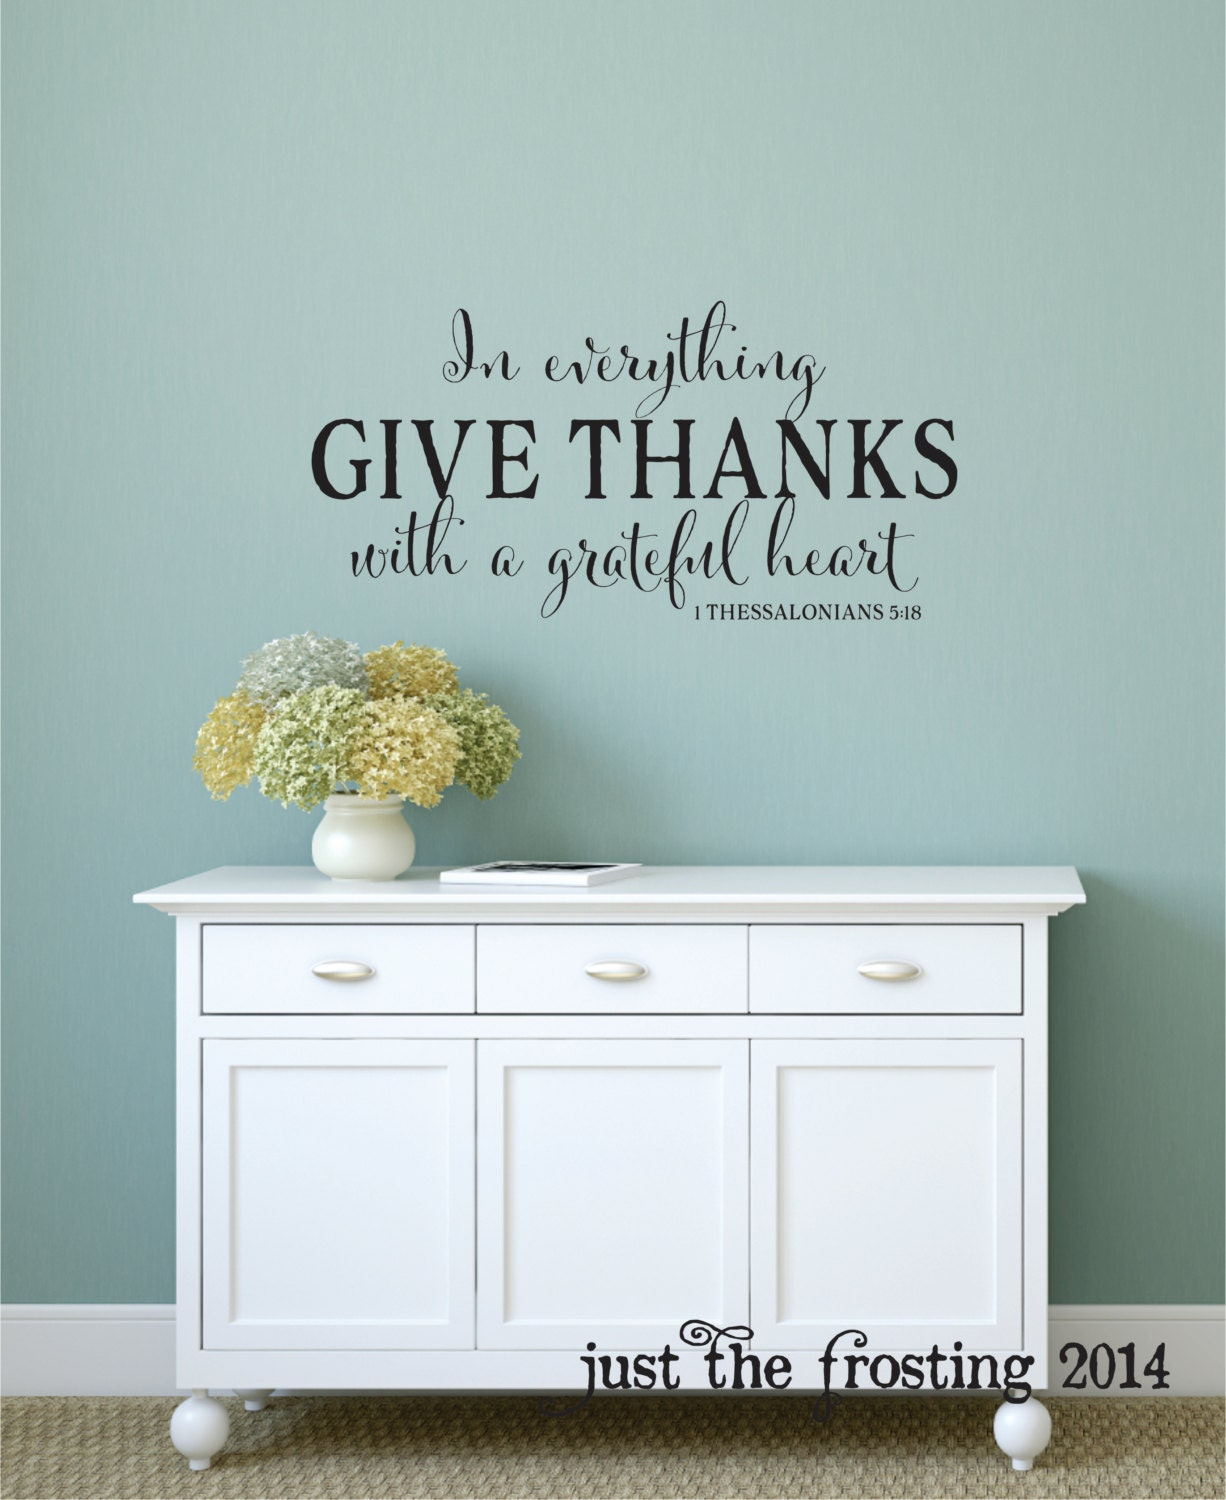 In everything give thanks wall decal 1 thessalonians 518 zoom amipublicfo Choice Image